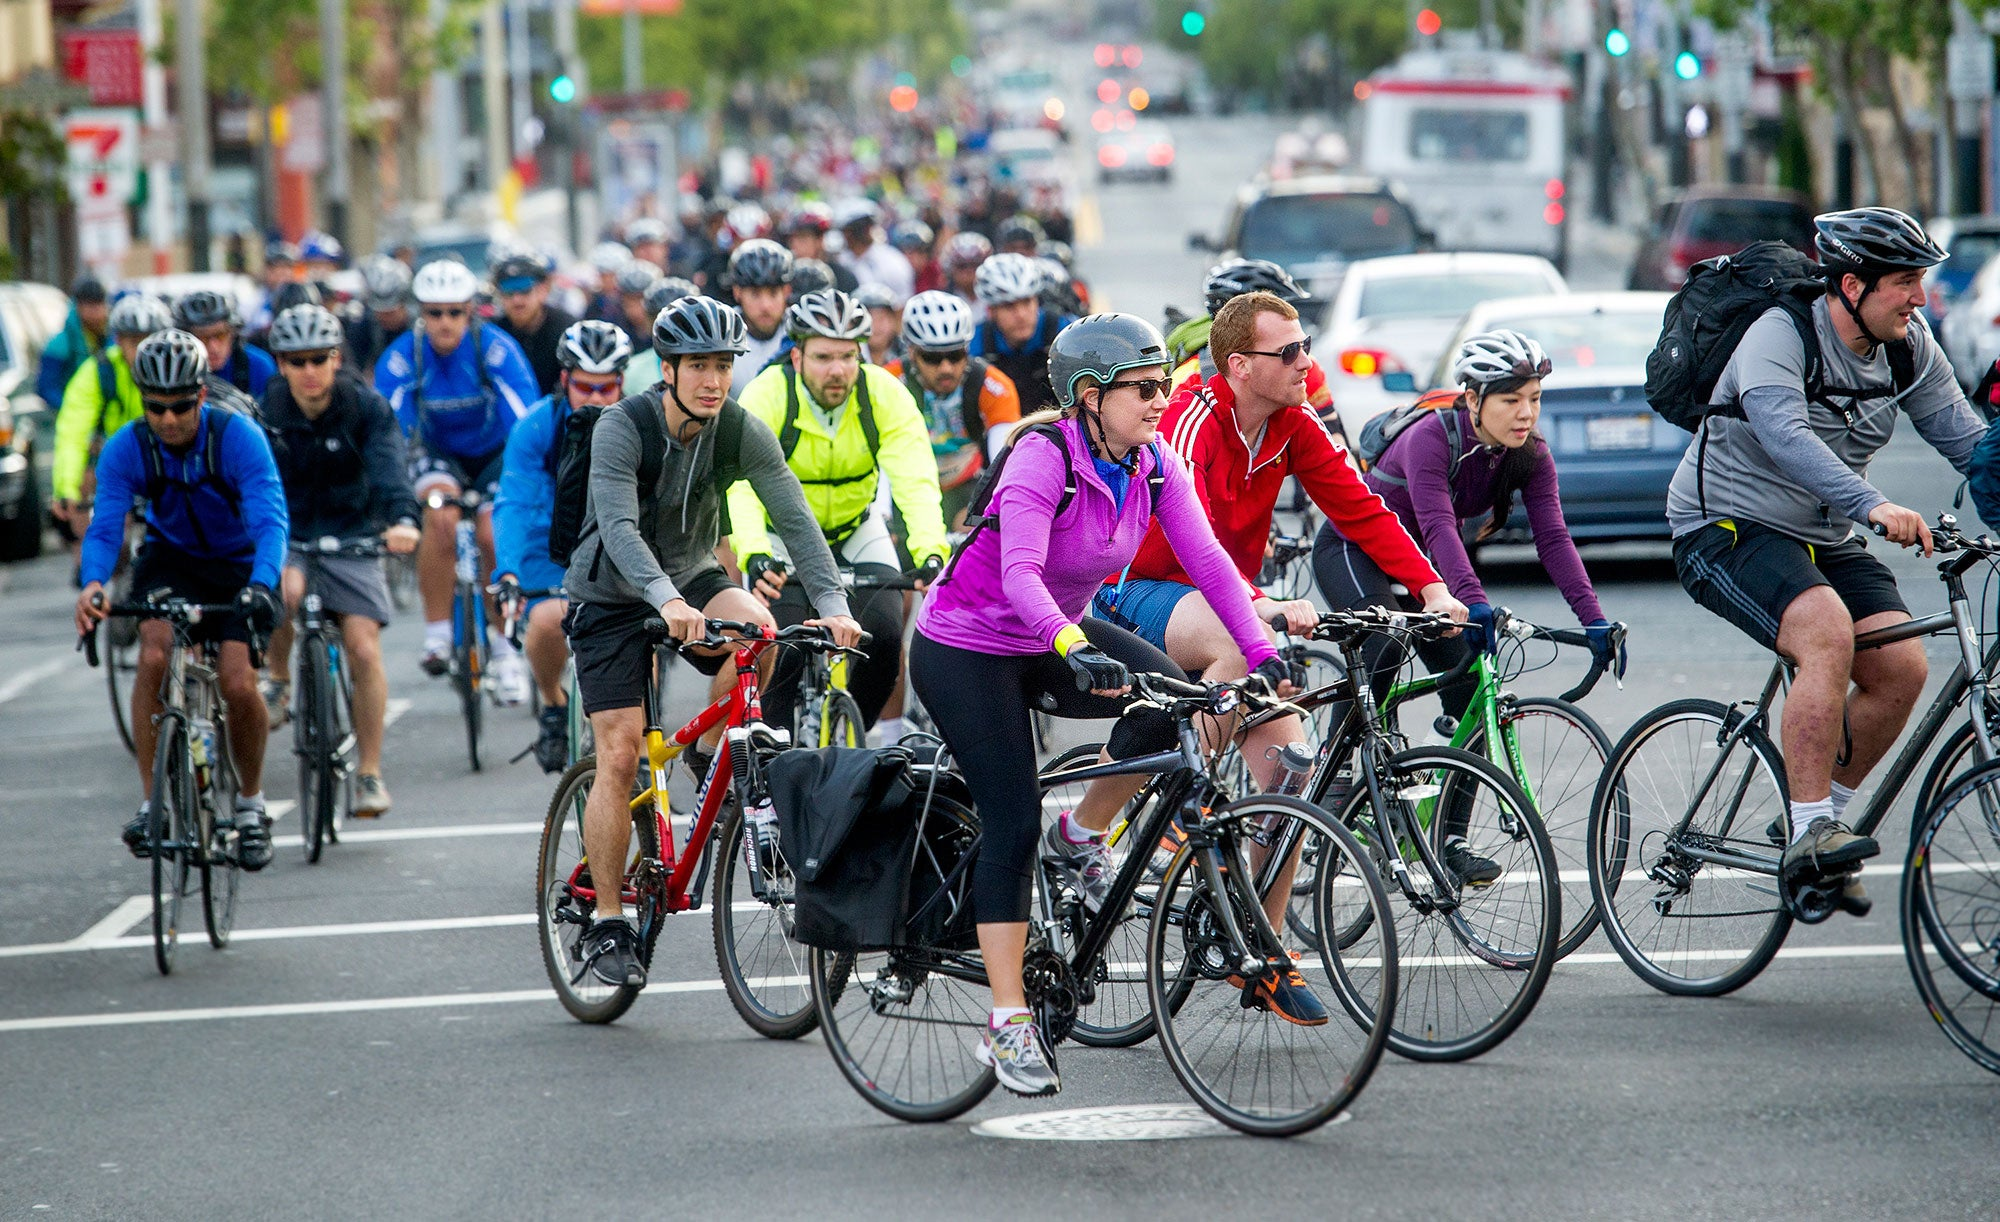 SF bike riders on Bike-to-Work Day 2014